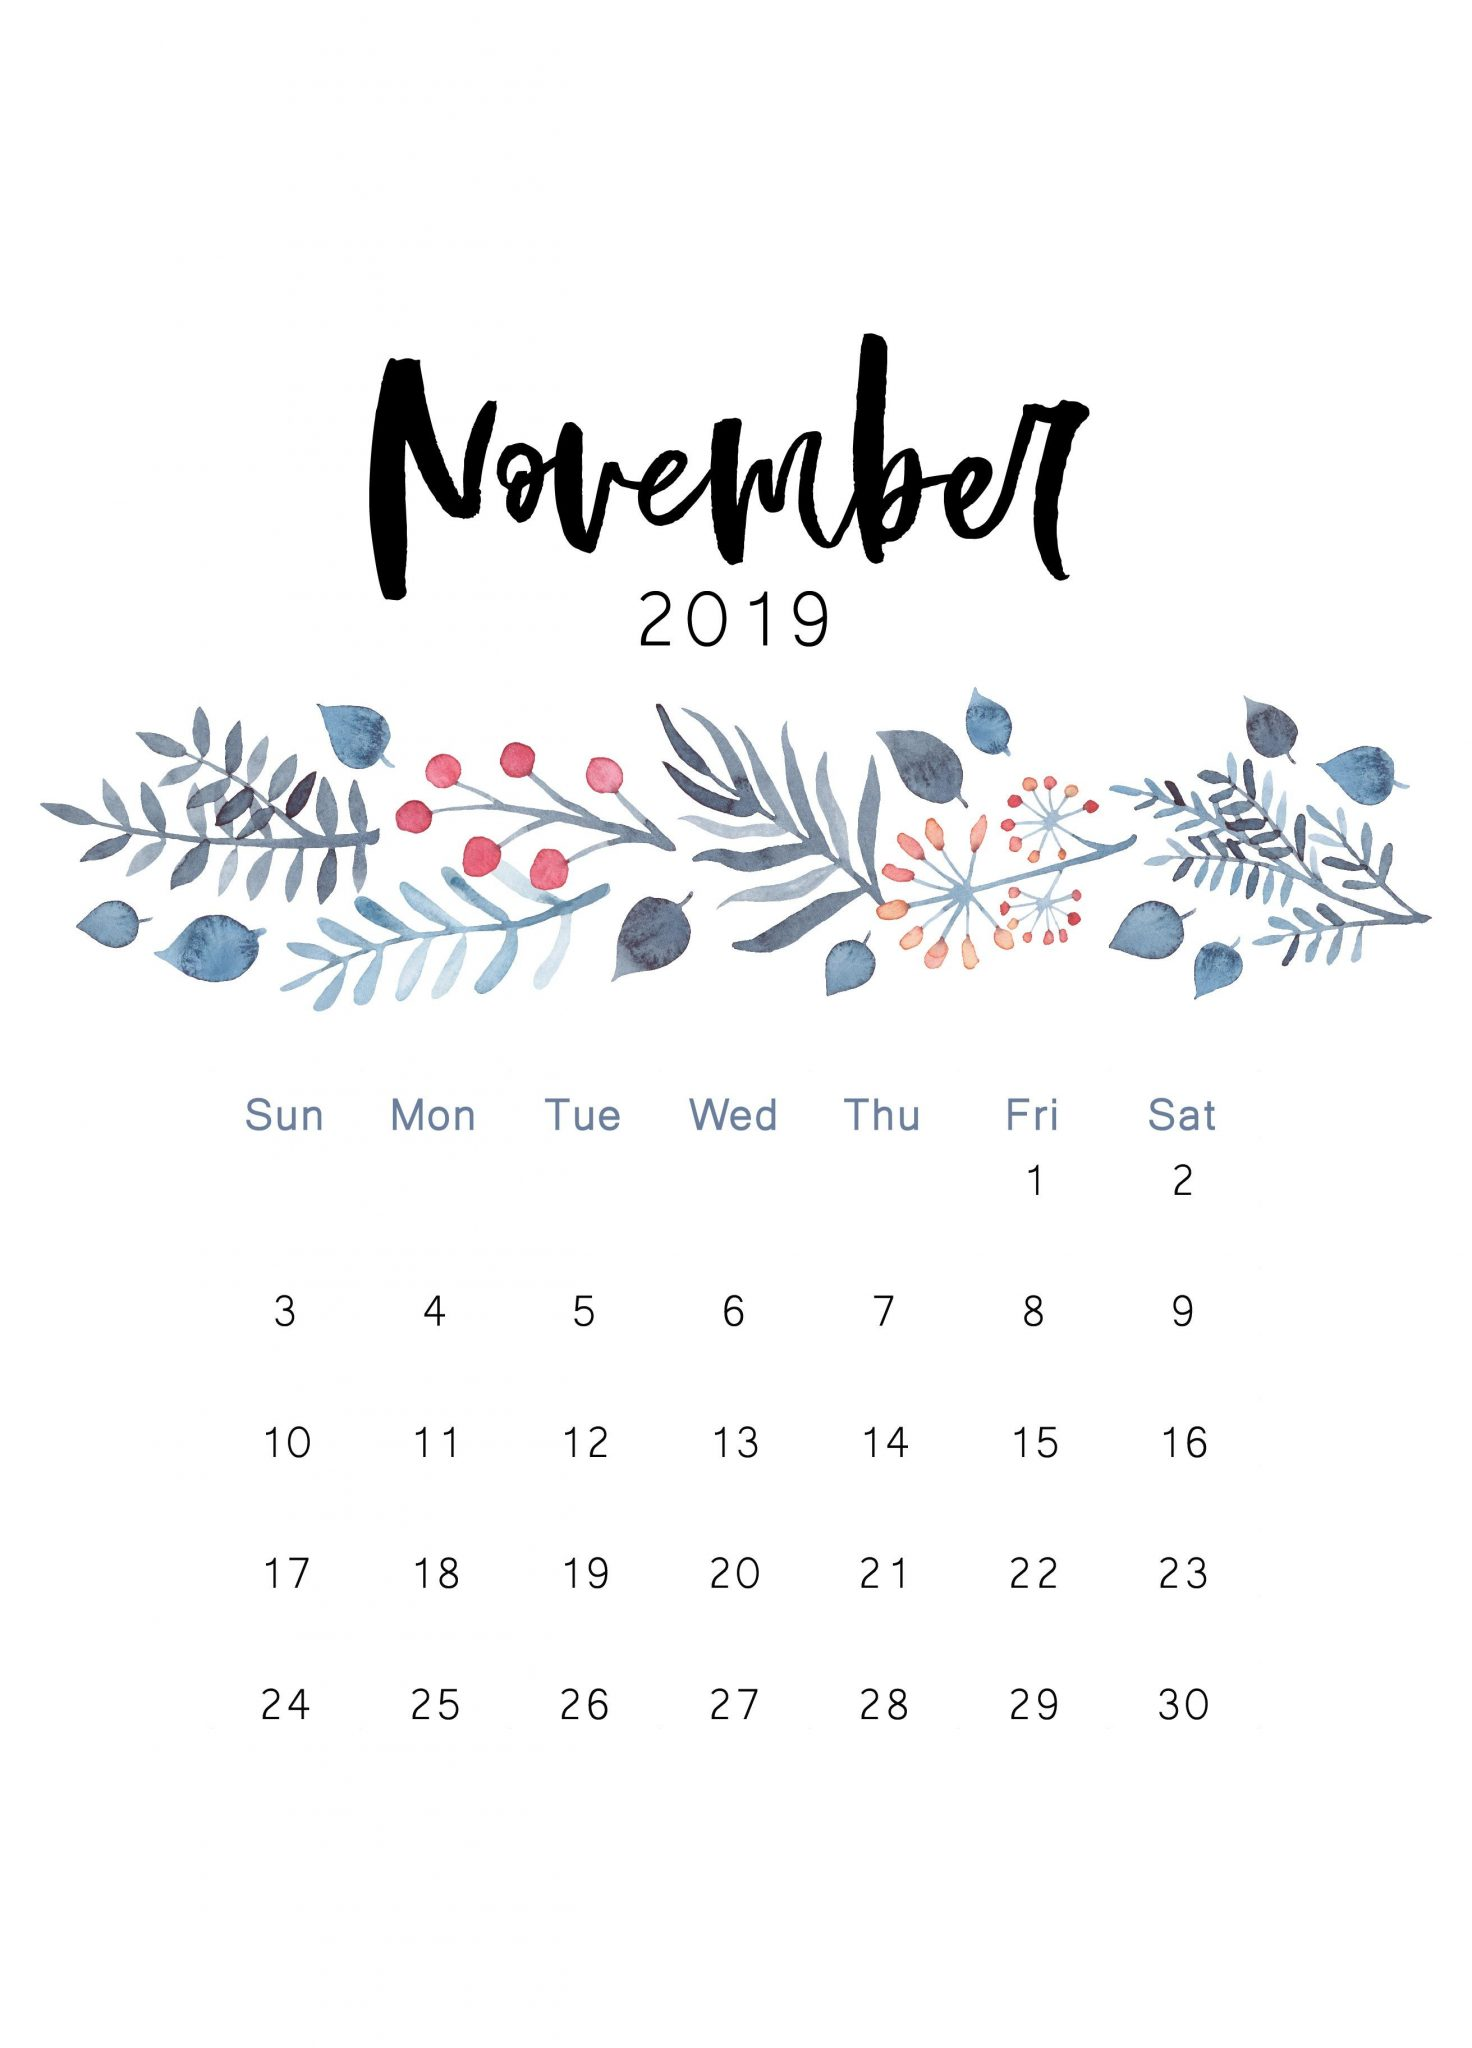 Cute November 2019 iPhone Calendar